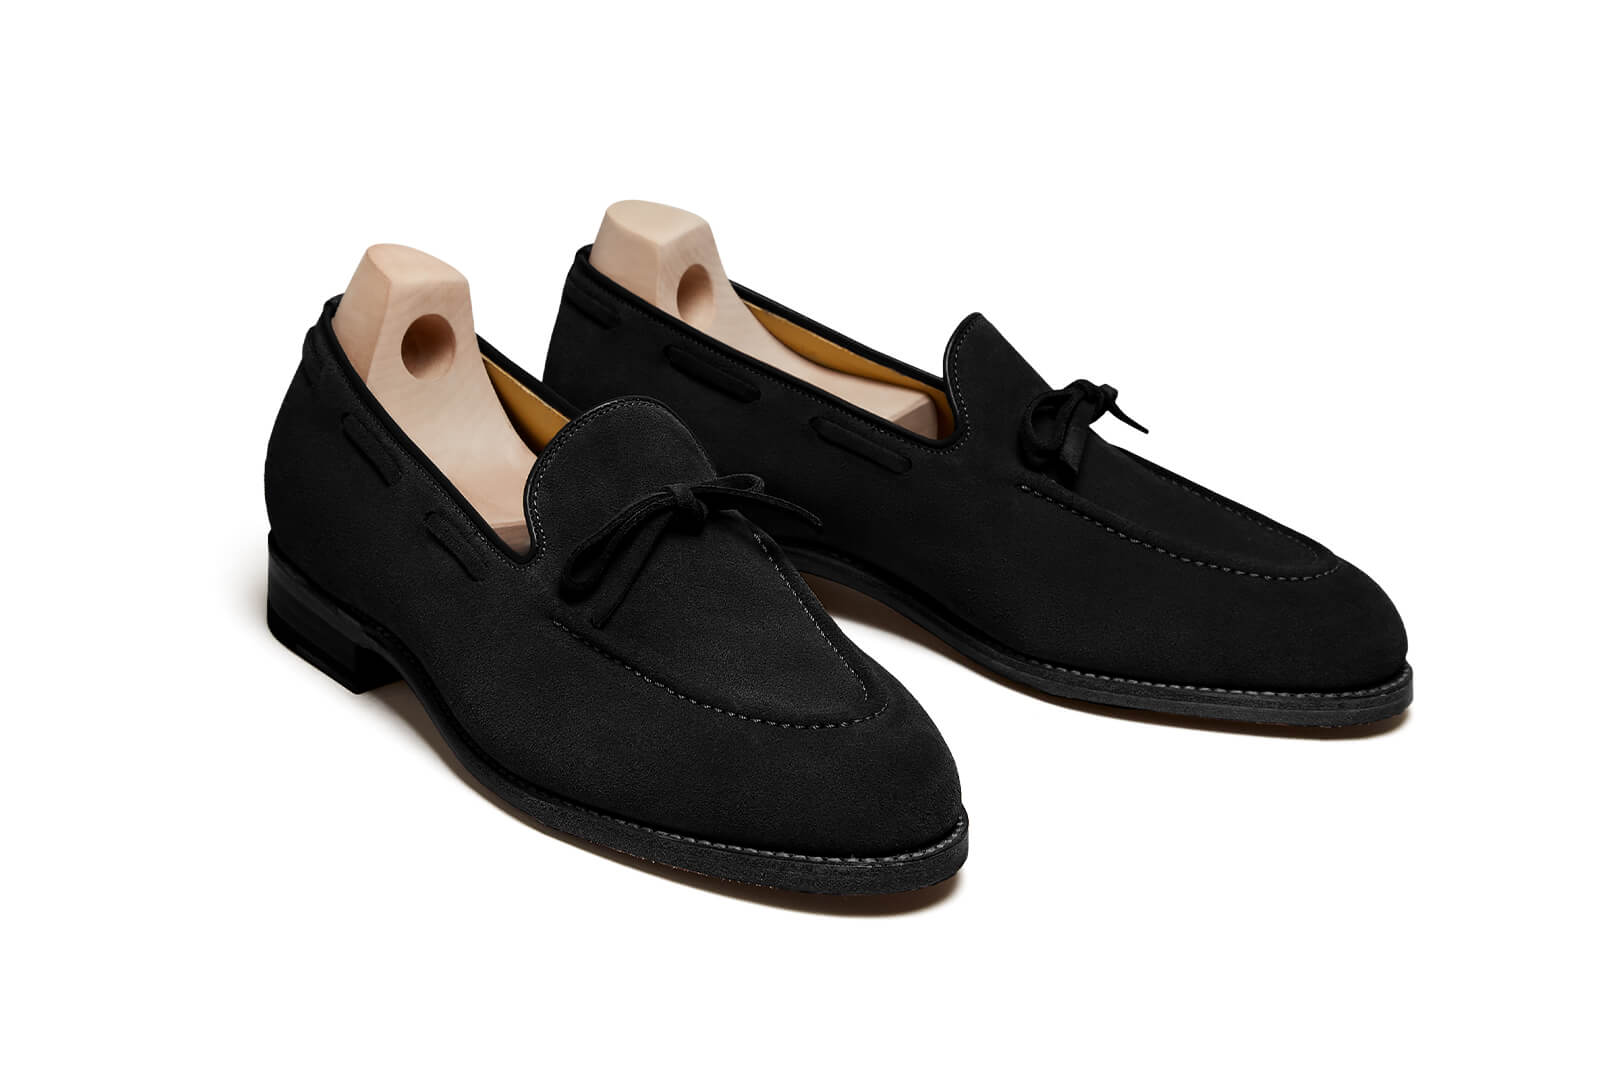 Fårö Black Suede Loafer